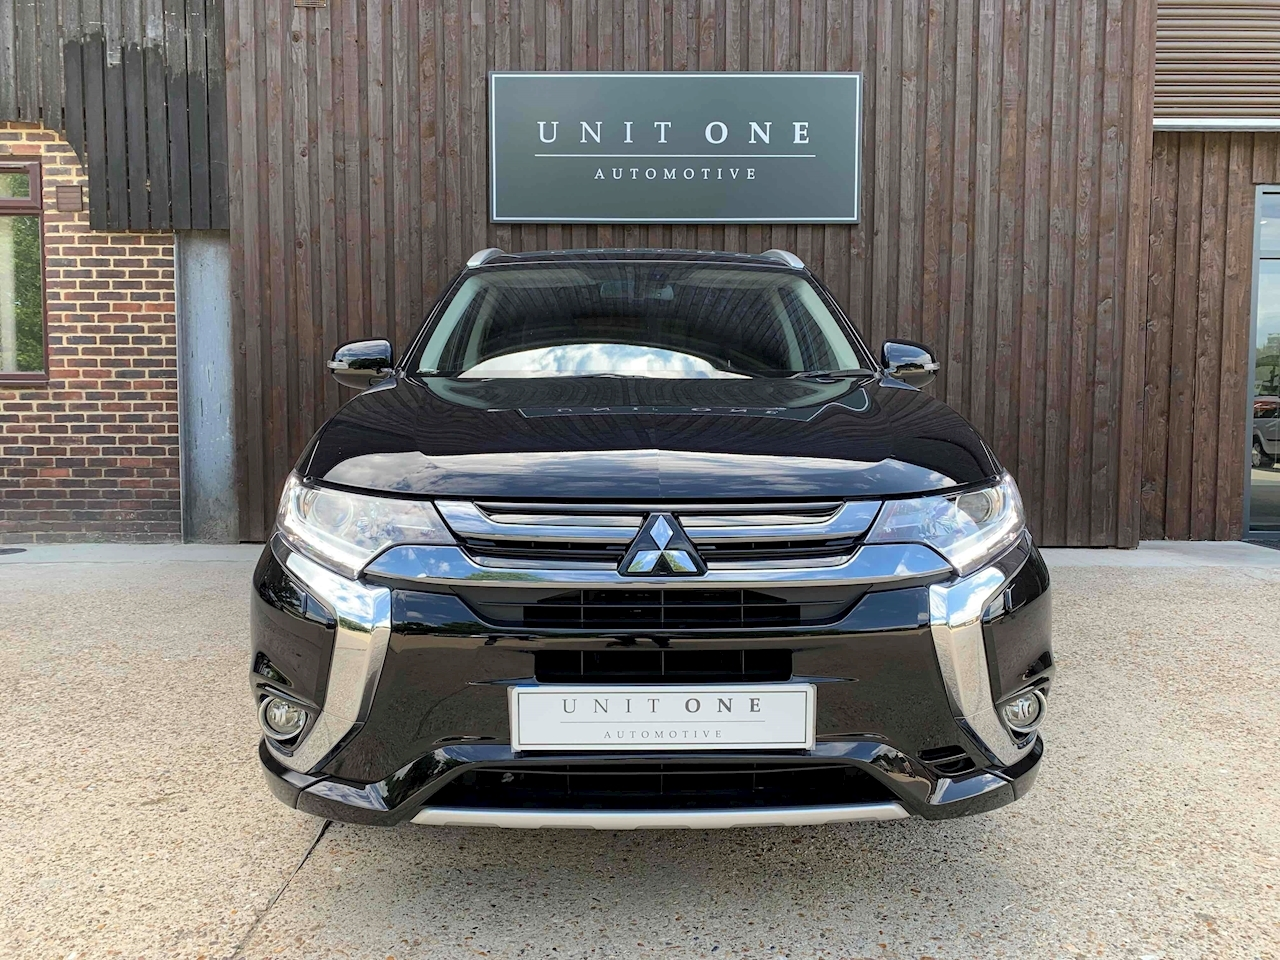 Outlander Phev Juro Commercial Light 4X4 Utility 2.0 Cvt Petrol/Electric